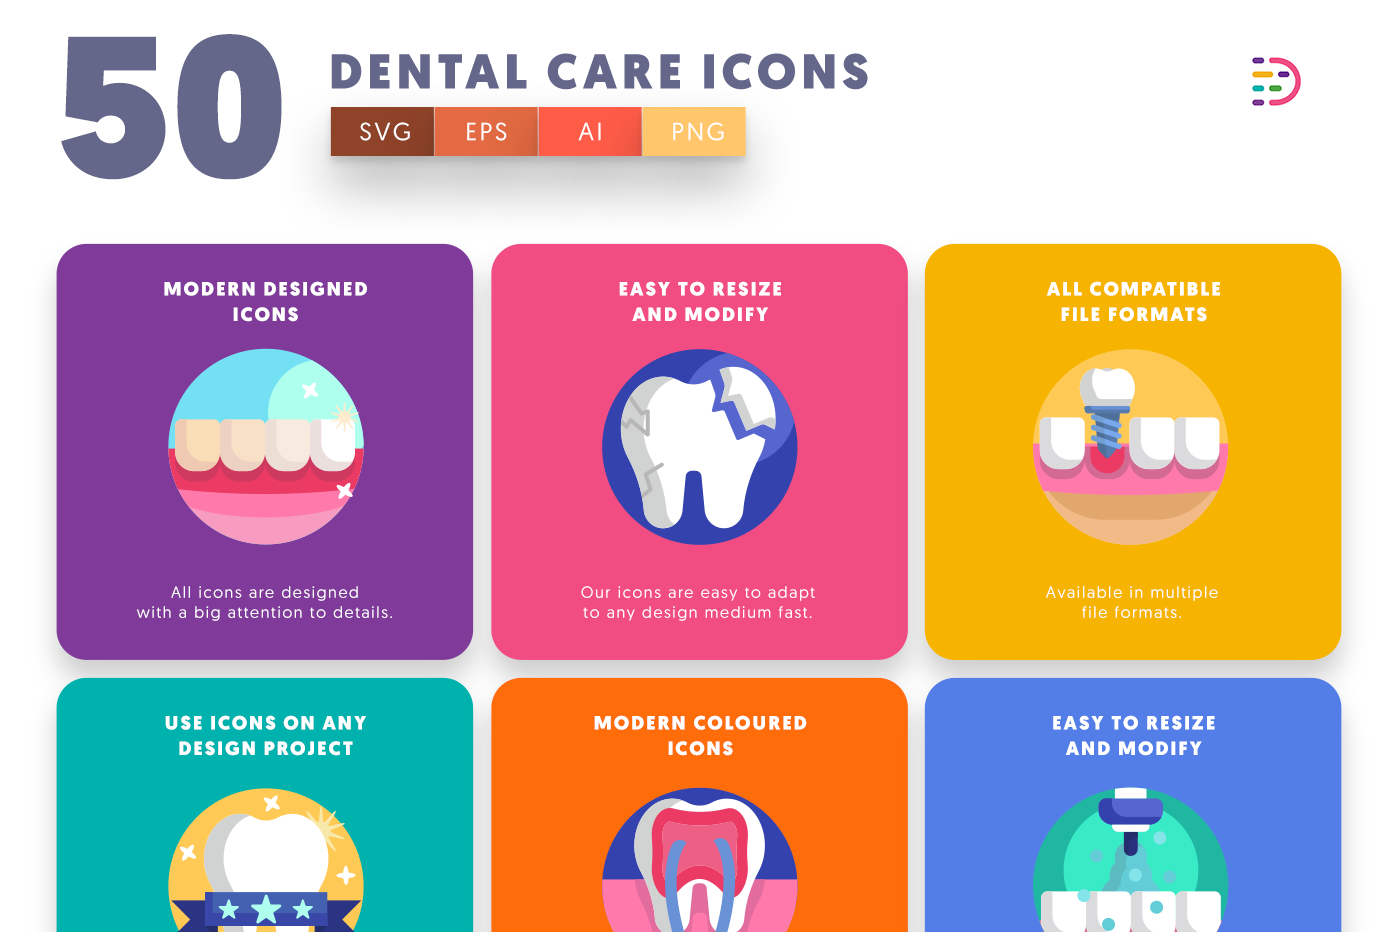 50 Dental Care Icons with colored backgrounds